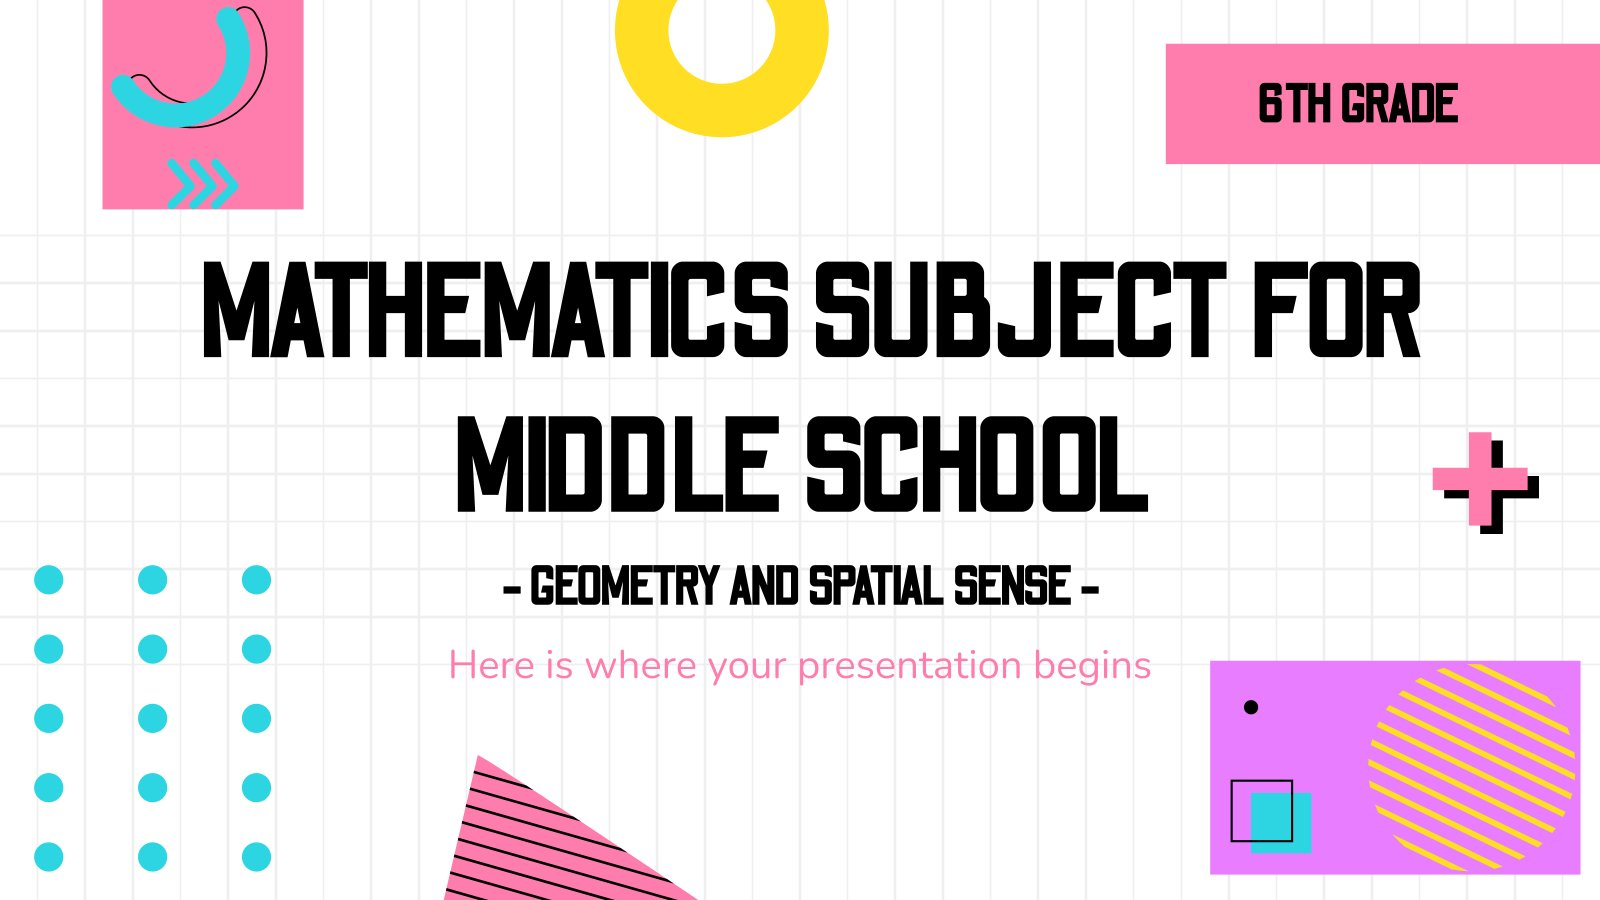 Mathematics Subject for Middle School - 6th Grade: Geometry and Spatial Sense presentation template